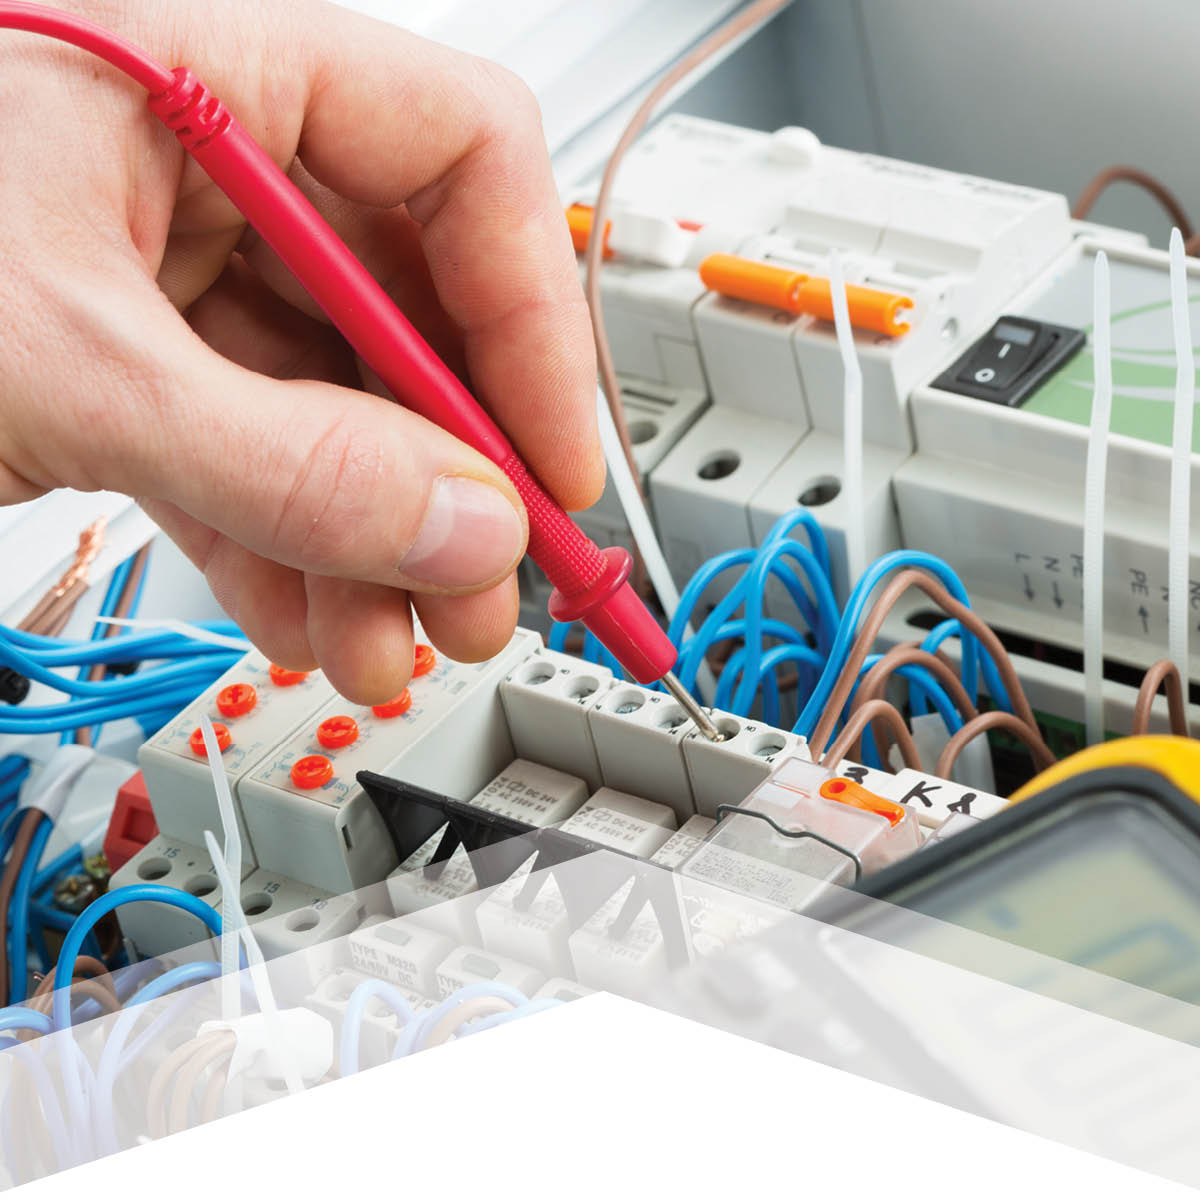 Electrical Inspections In Leicester Electrician About Wiring This Can Highlight Any Major Problems With The And Might Help You Save Thousands Long Run Or Potentially Even Sway Your Decision Regarding